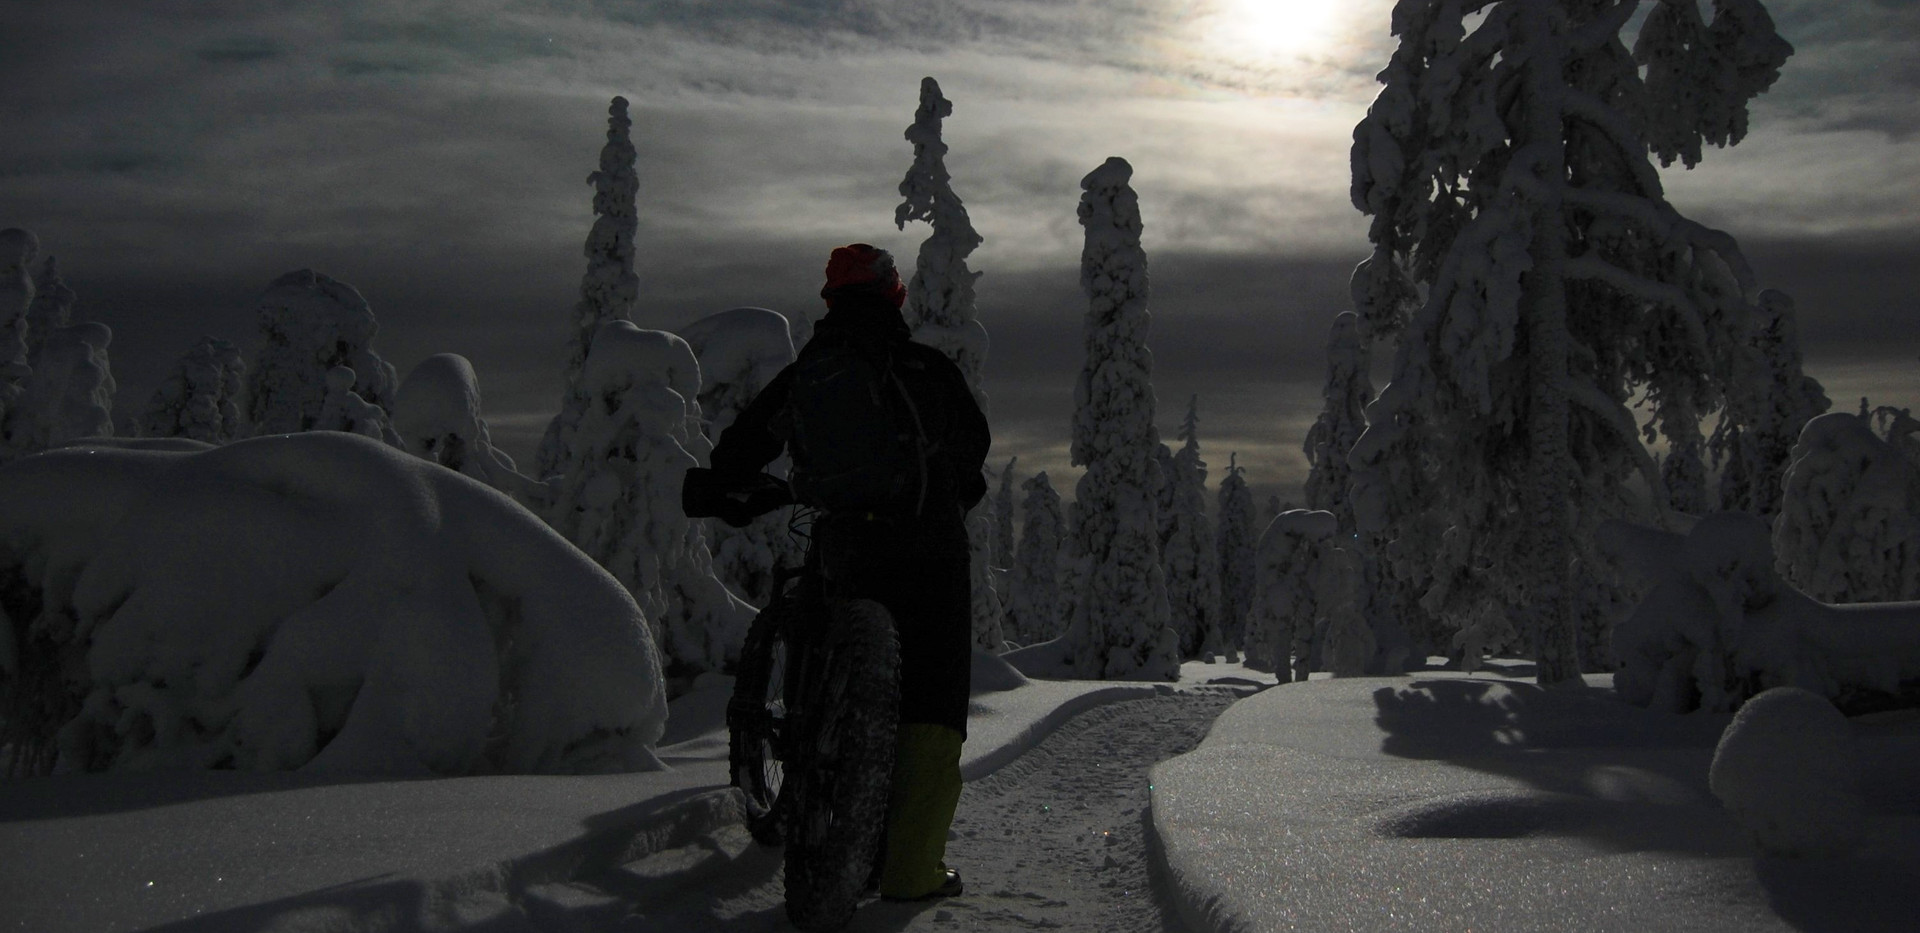 Winter biking in Moonlight